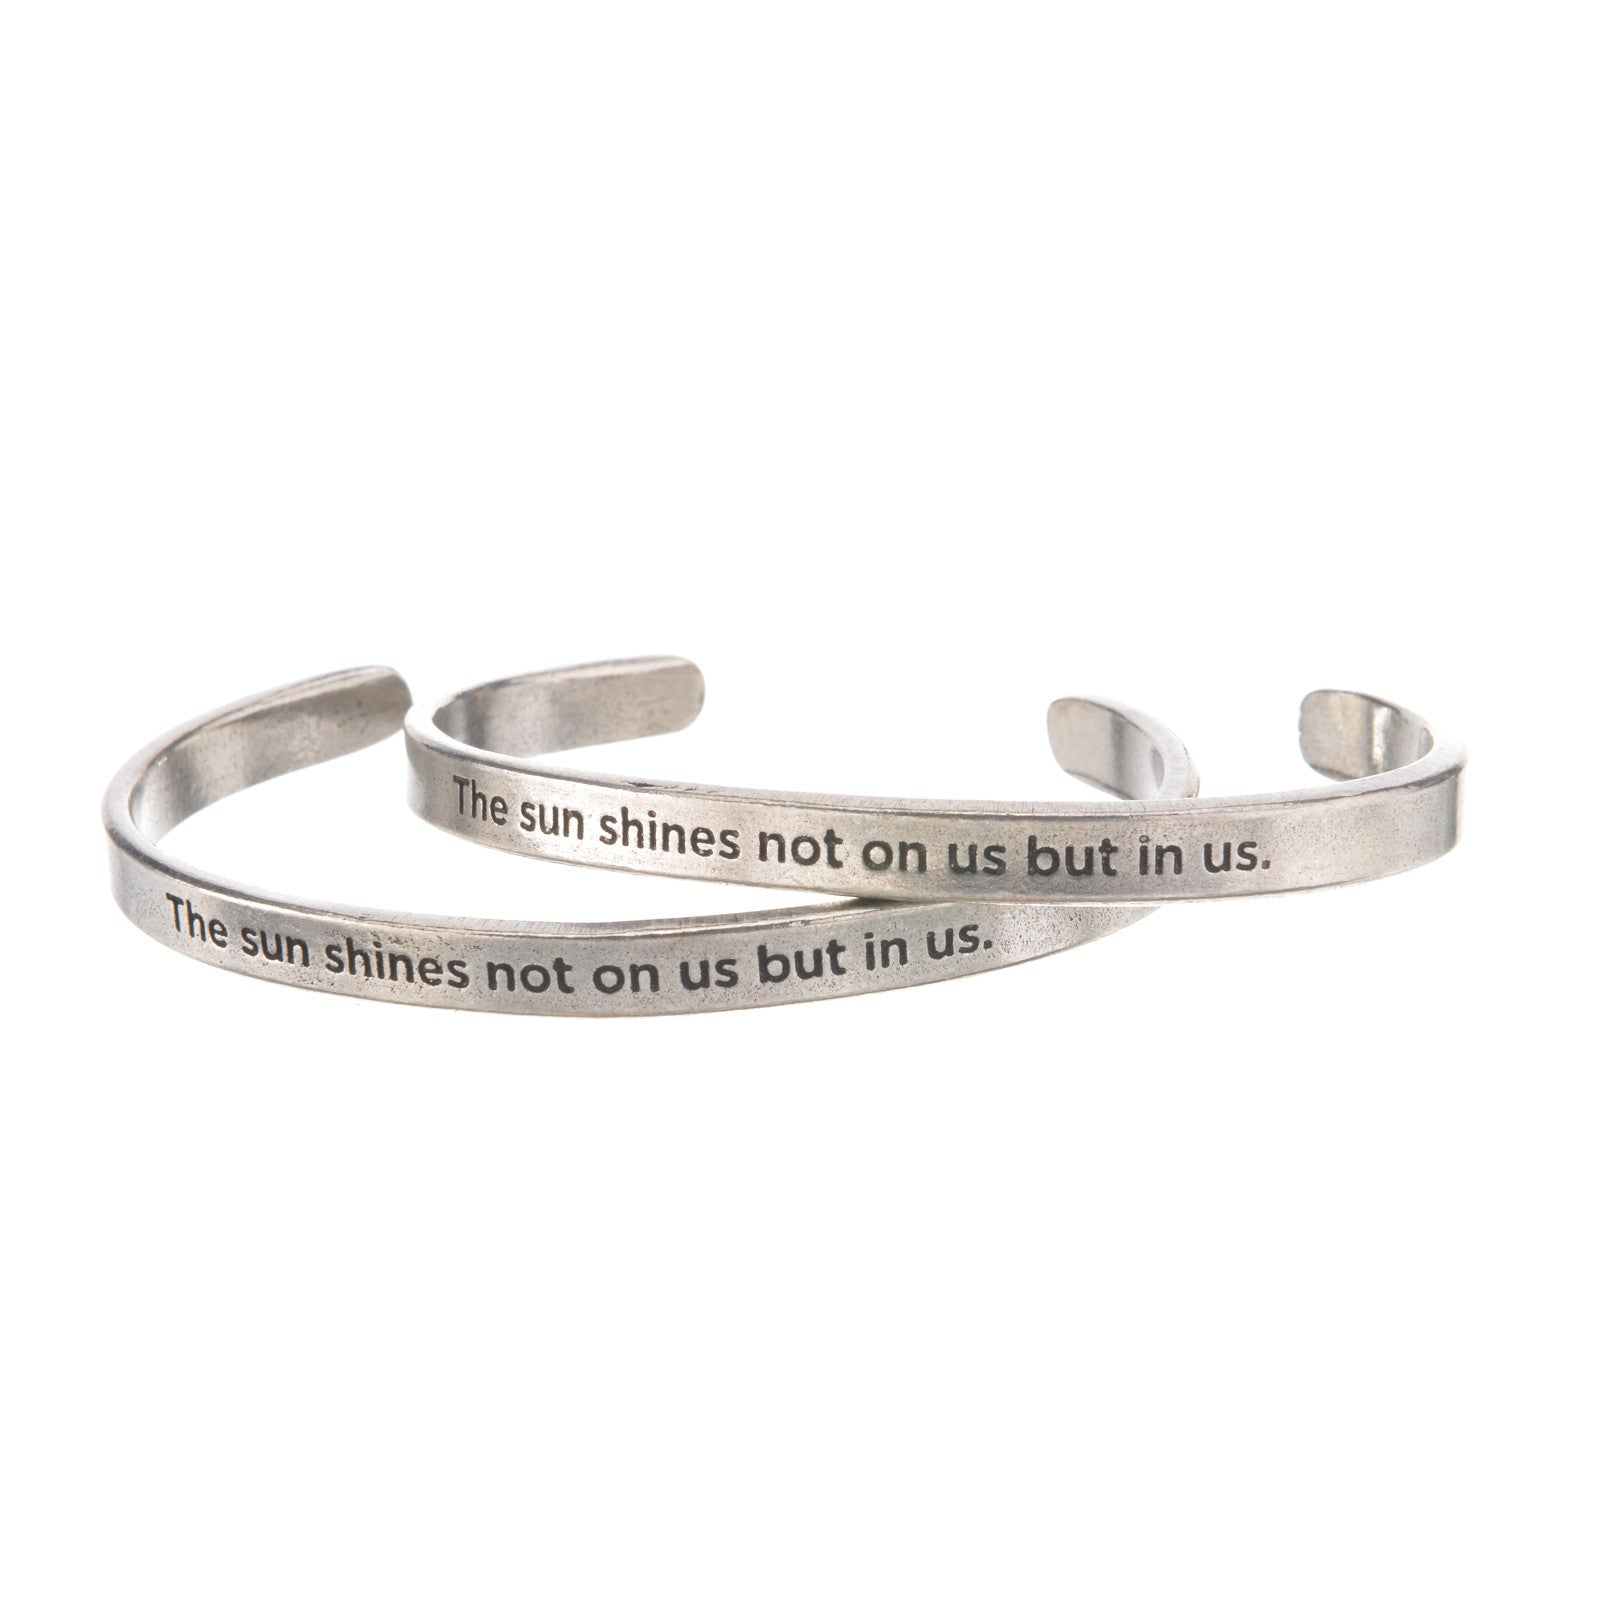 The Sun Shines Not On Us But In Us John Muir Quotable Cuff Bracelet - Whitney Howard Designs